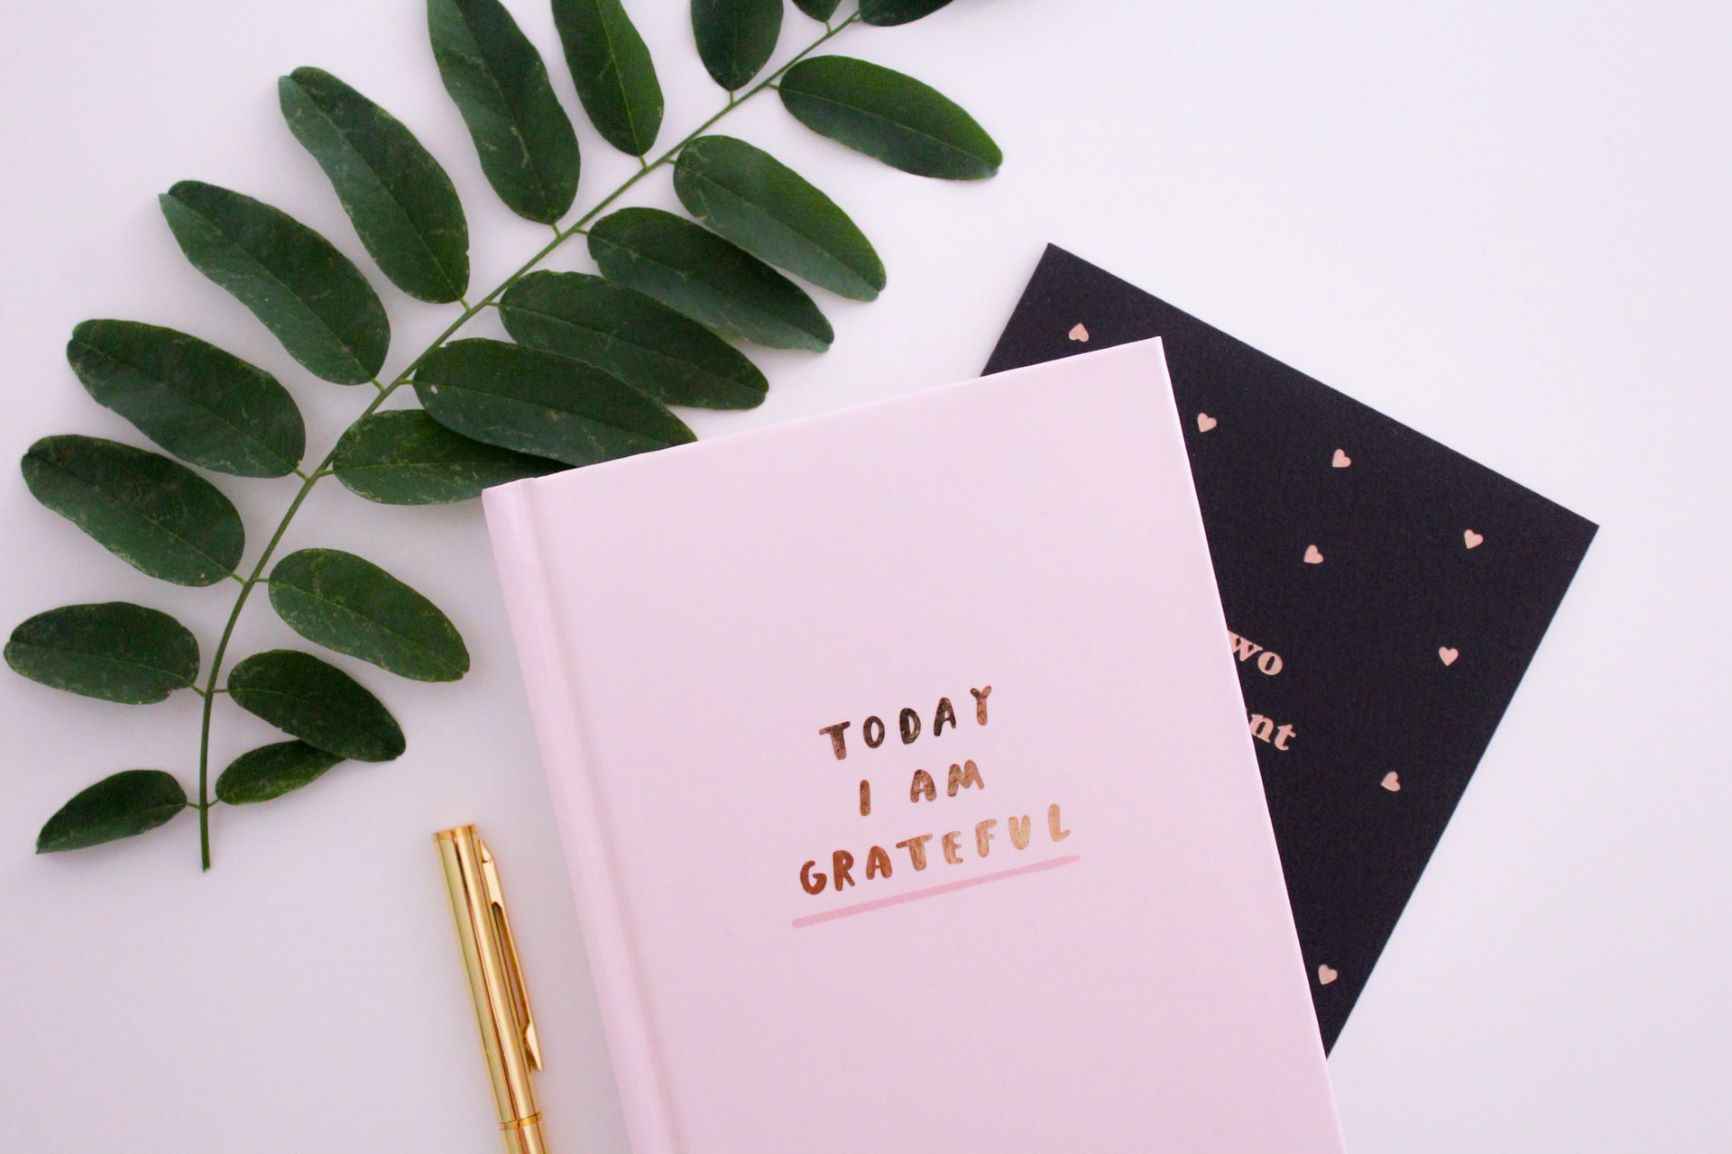 Gratitude for Your Health: 6 Simple Ways to Incorporate Gratitude into Your Daily Life